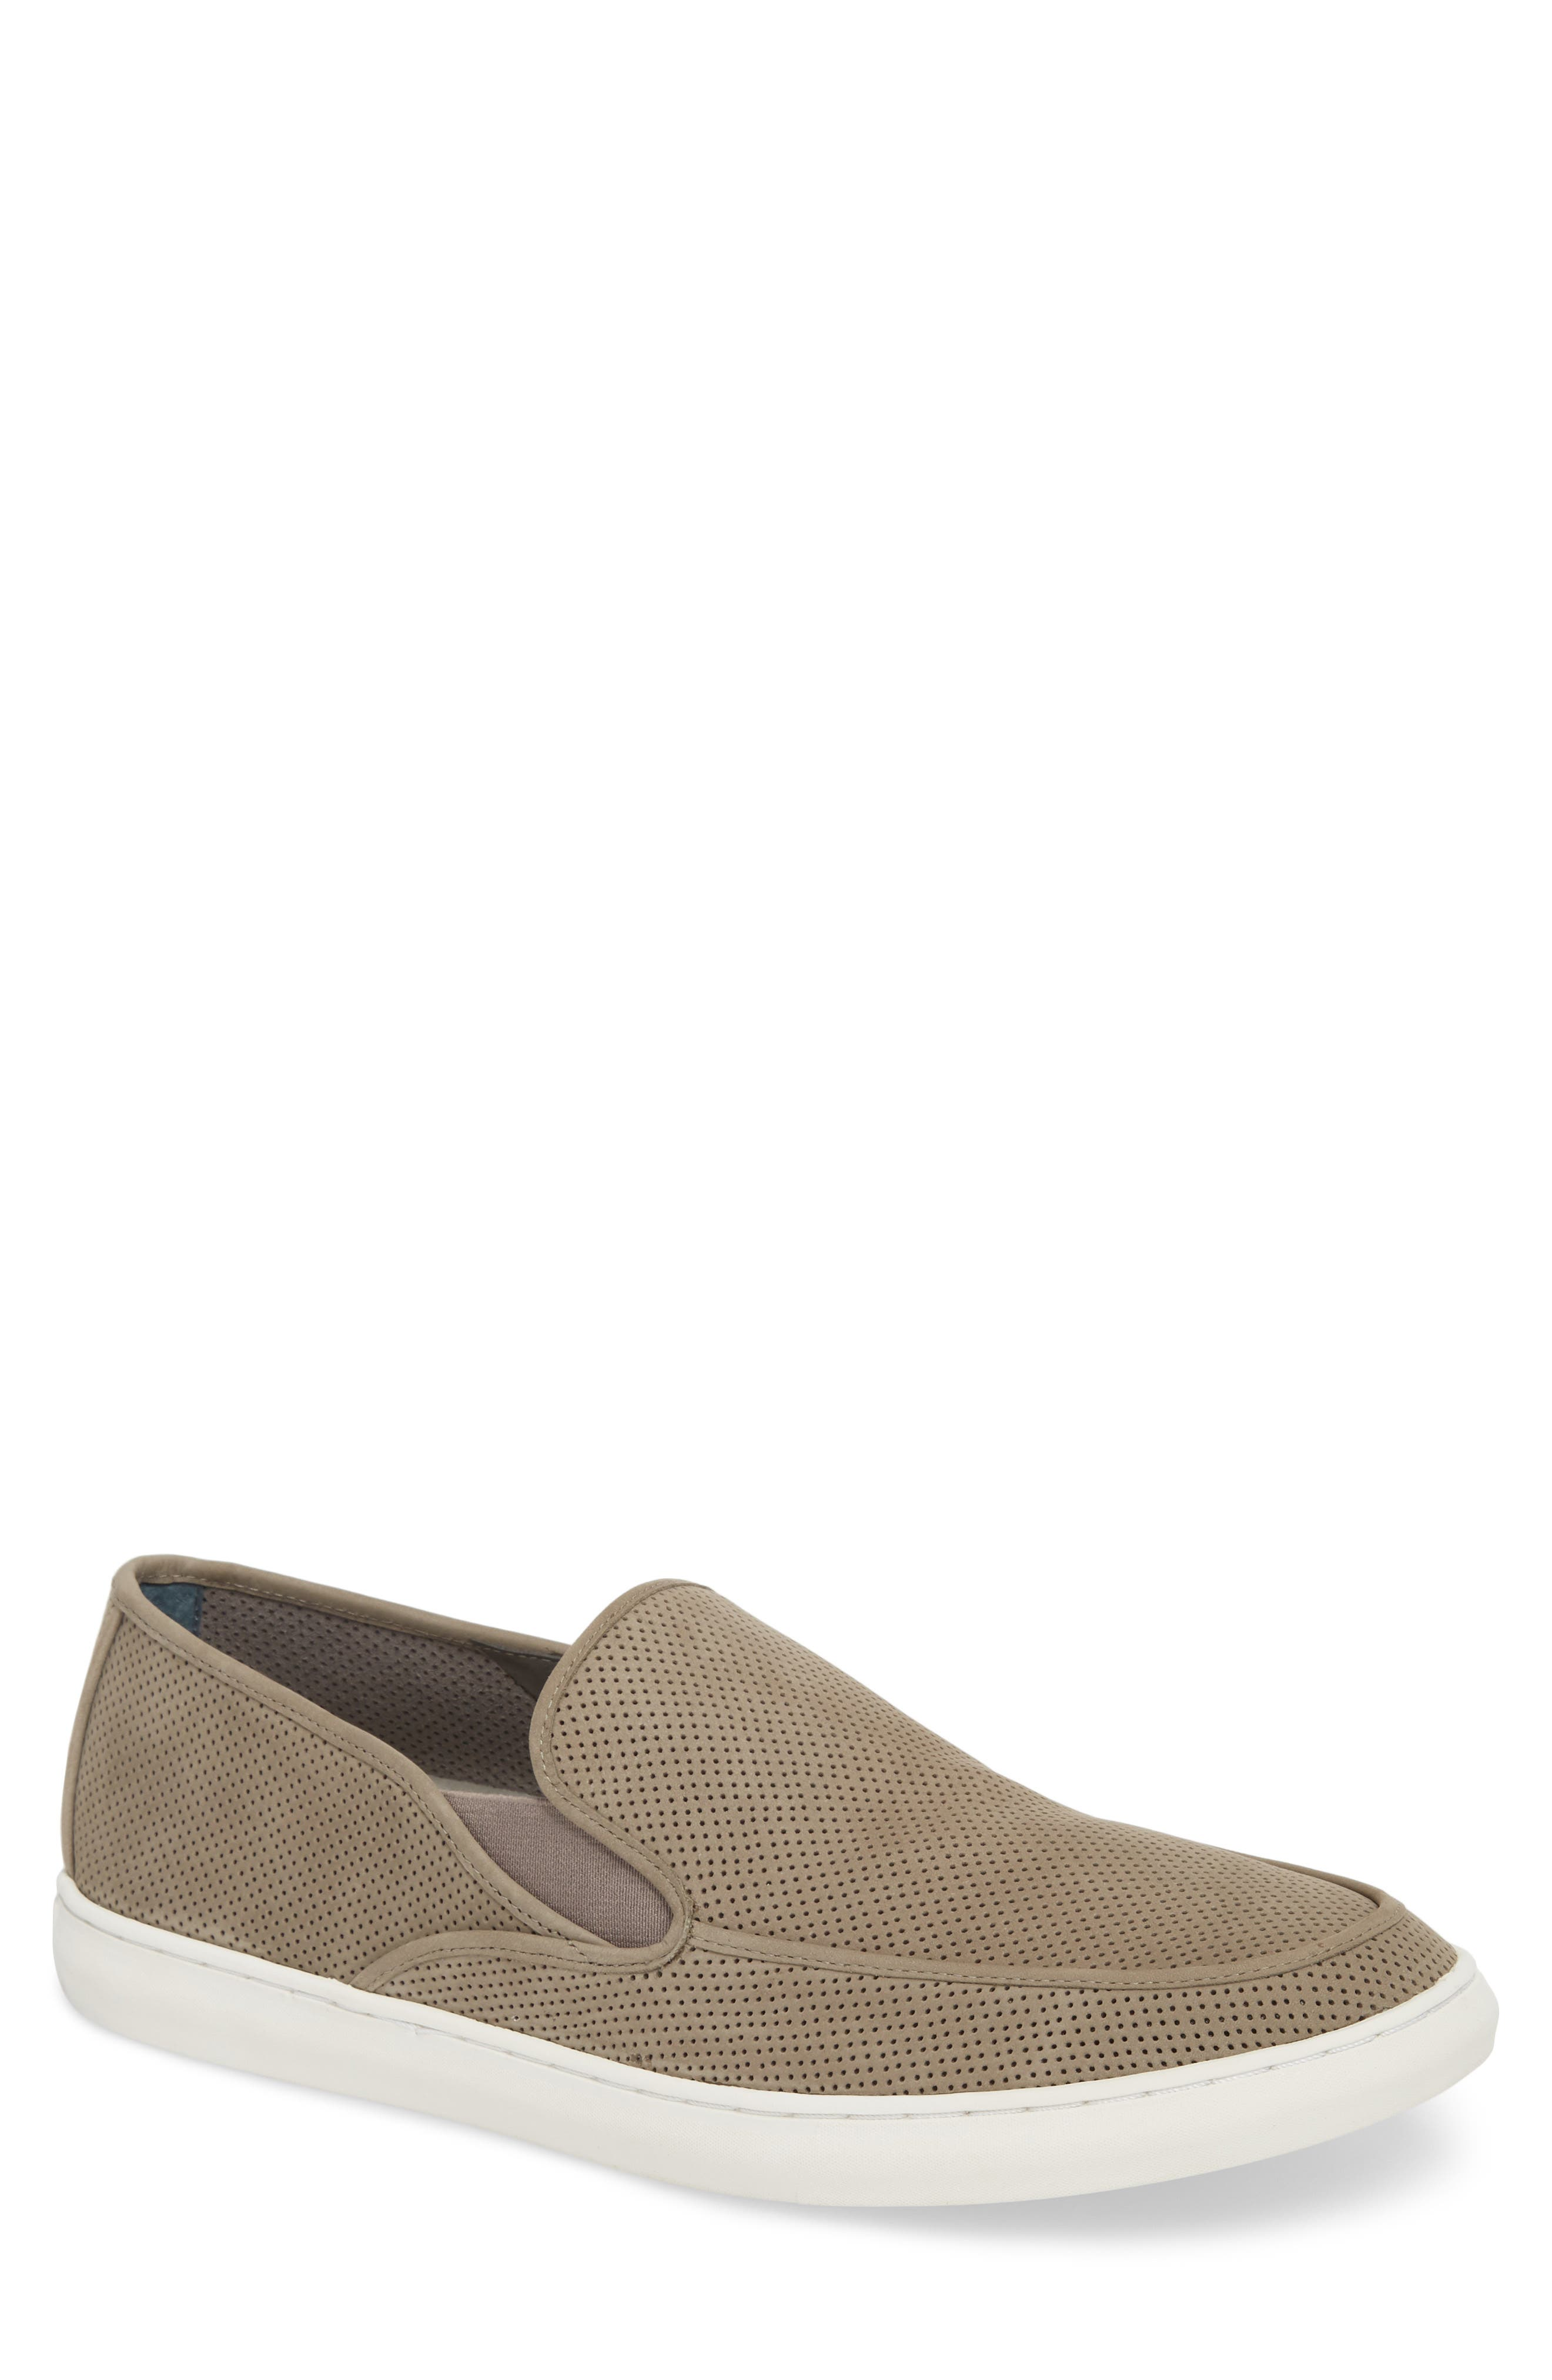 1901 Venice Perforated Suede Slip-On